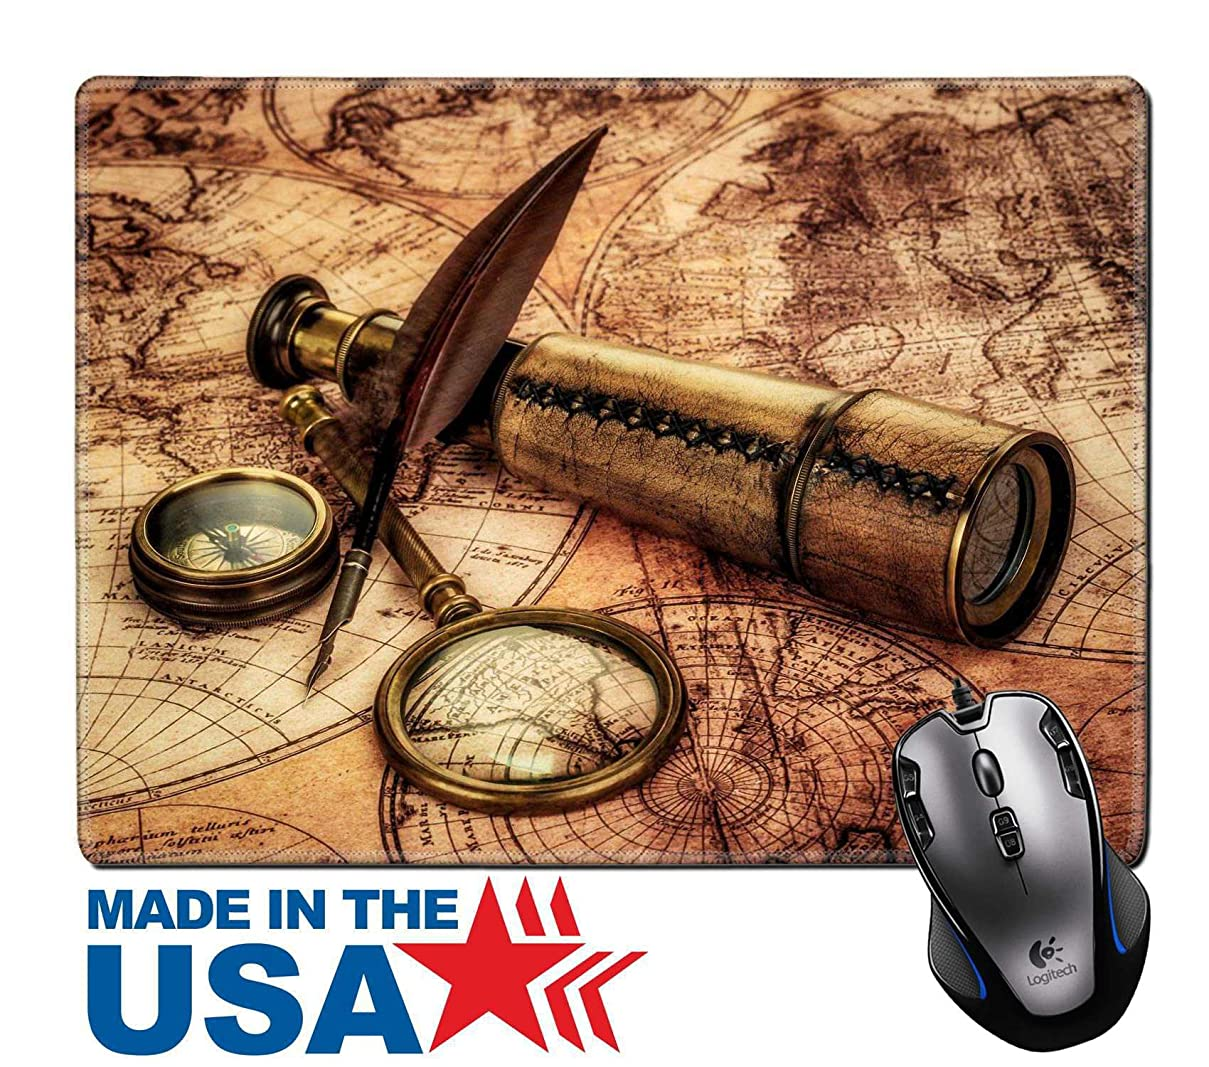 MSD Natural Rubber Mouse Pad/Mat with Stitched Edges 9.8  x 7.9  Vintage Magnifying Glass Compass Goose quill Pen and Spyglass Lying on an Old map 19447728 Customized Desktop Laptop Gaming Mouse Pad dcbeuzqdspy6